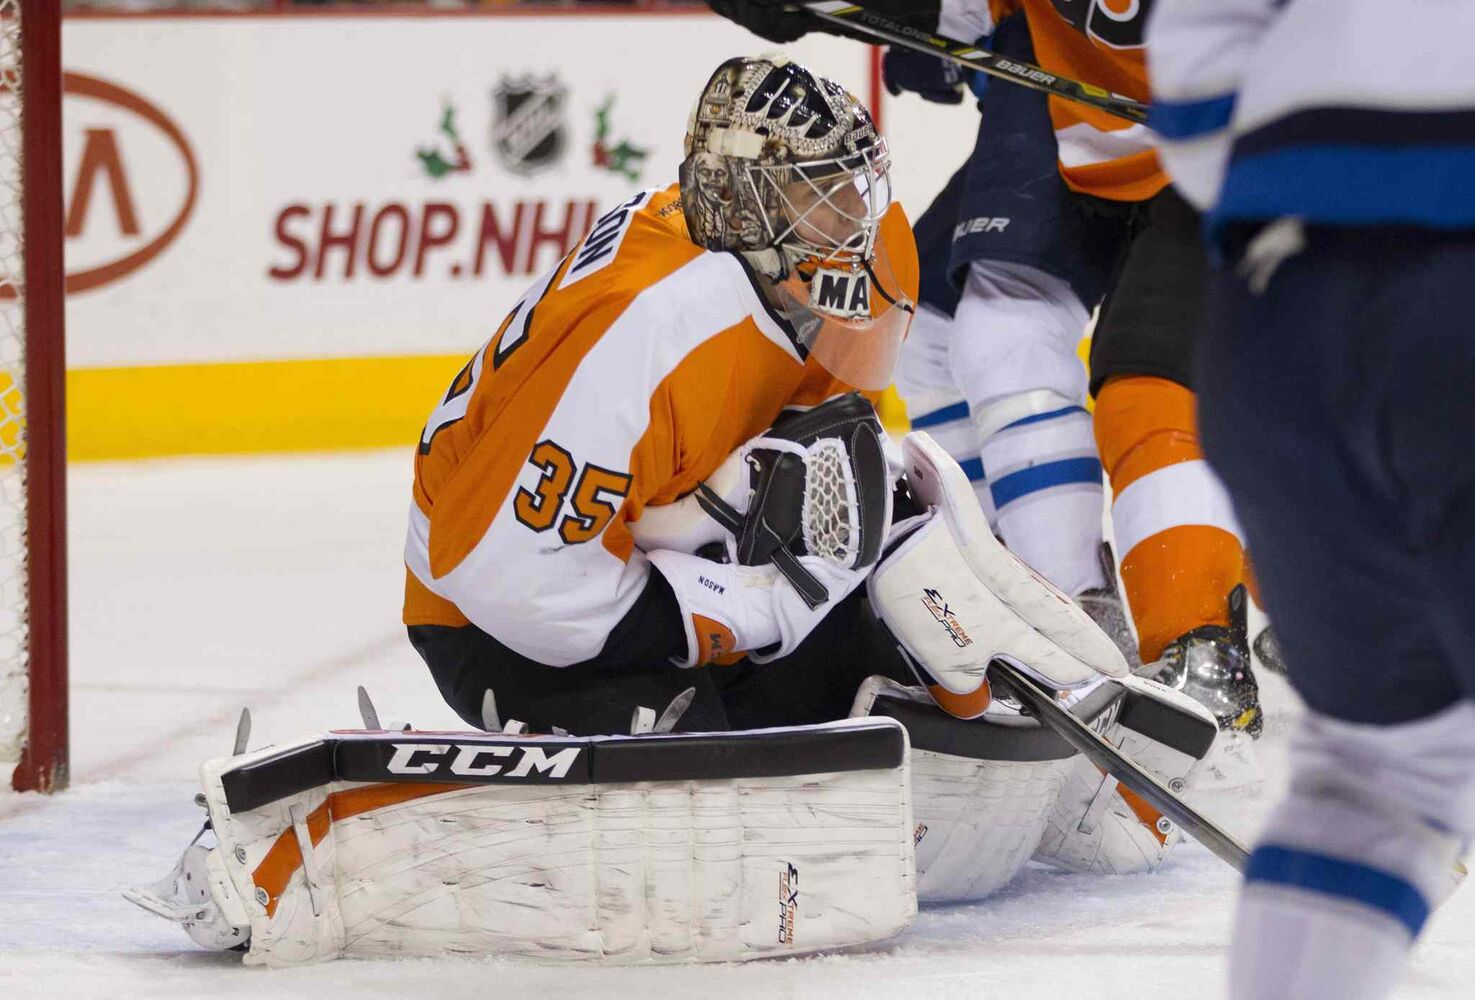 Steve Mason makes a save during the first period.